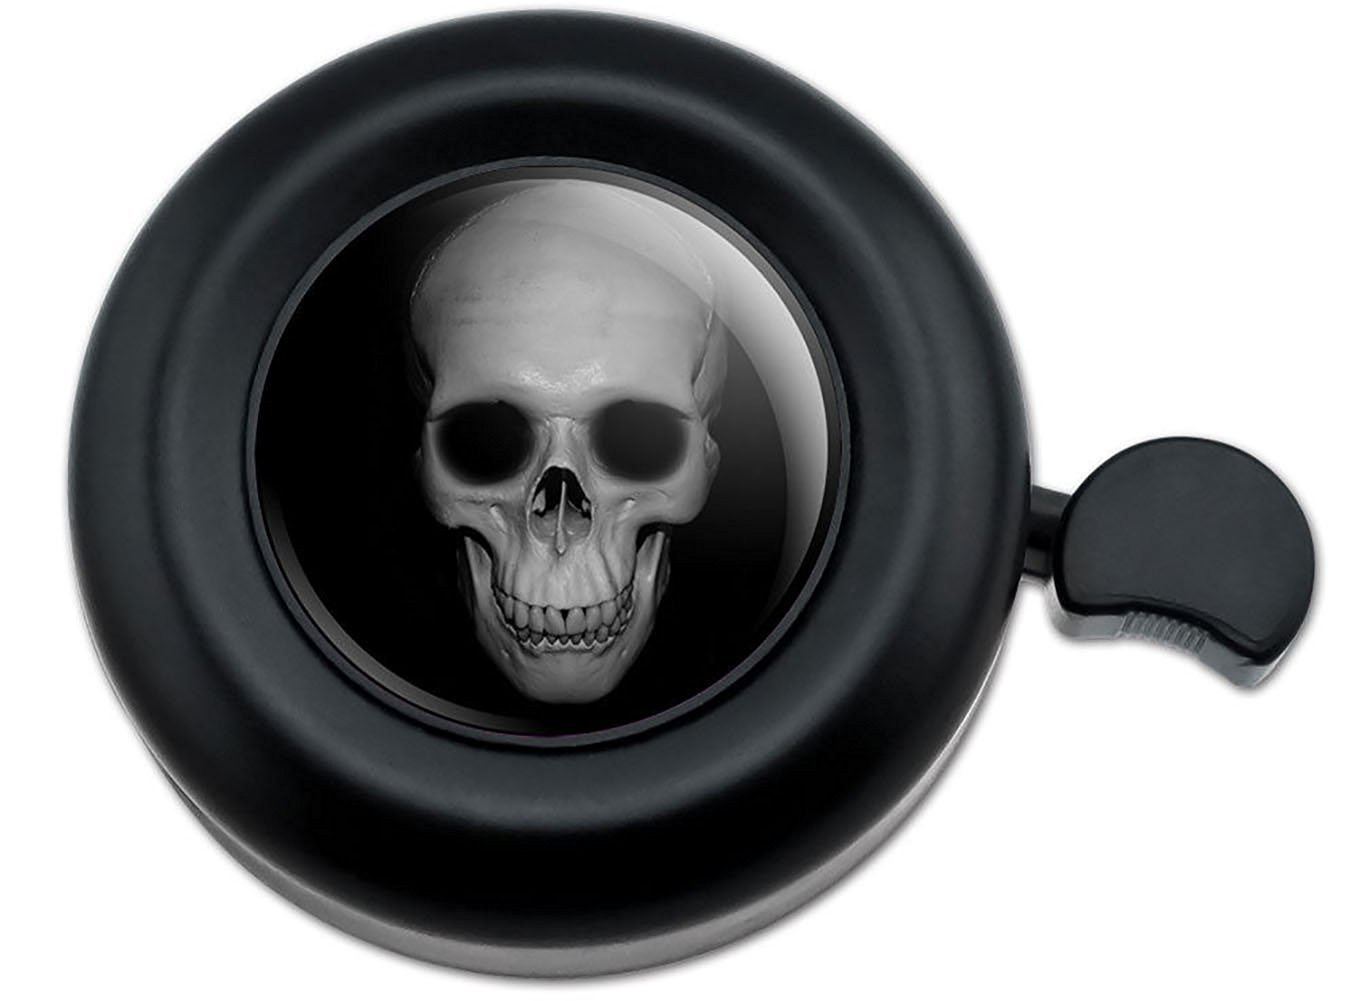 Cool and Custom {Fully Adjustable to Fit Most Bikes} Bicycle Handlebar Bell Made of Hard Metal with Realistic Skull Design {Black and Gray Colors}